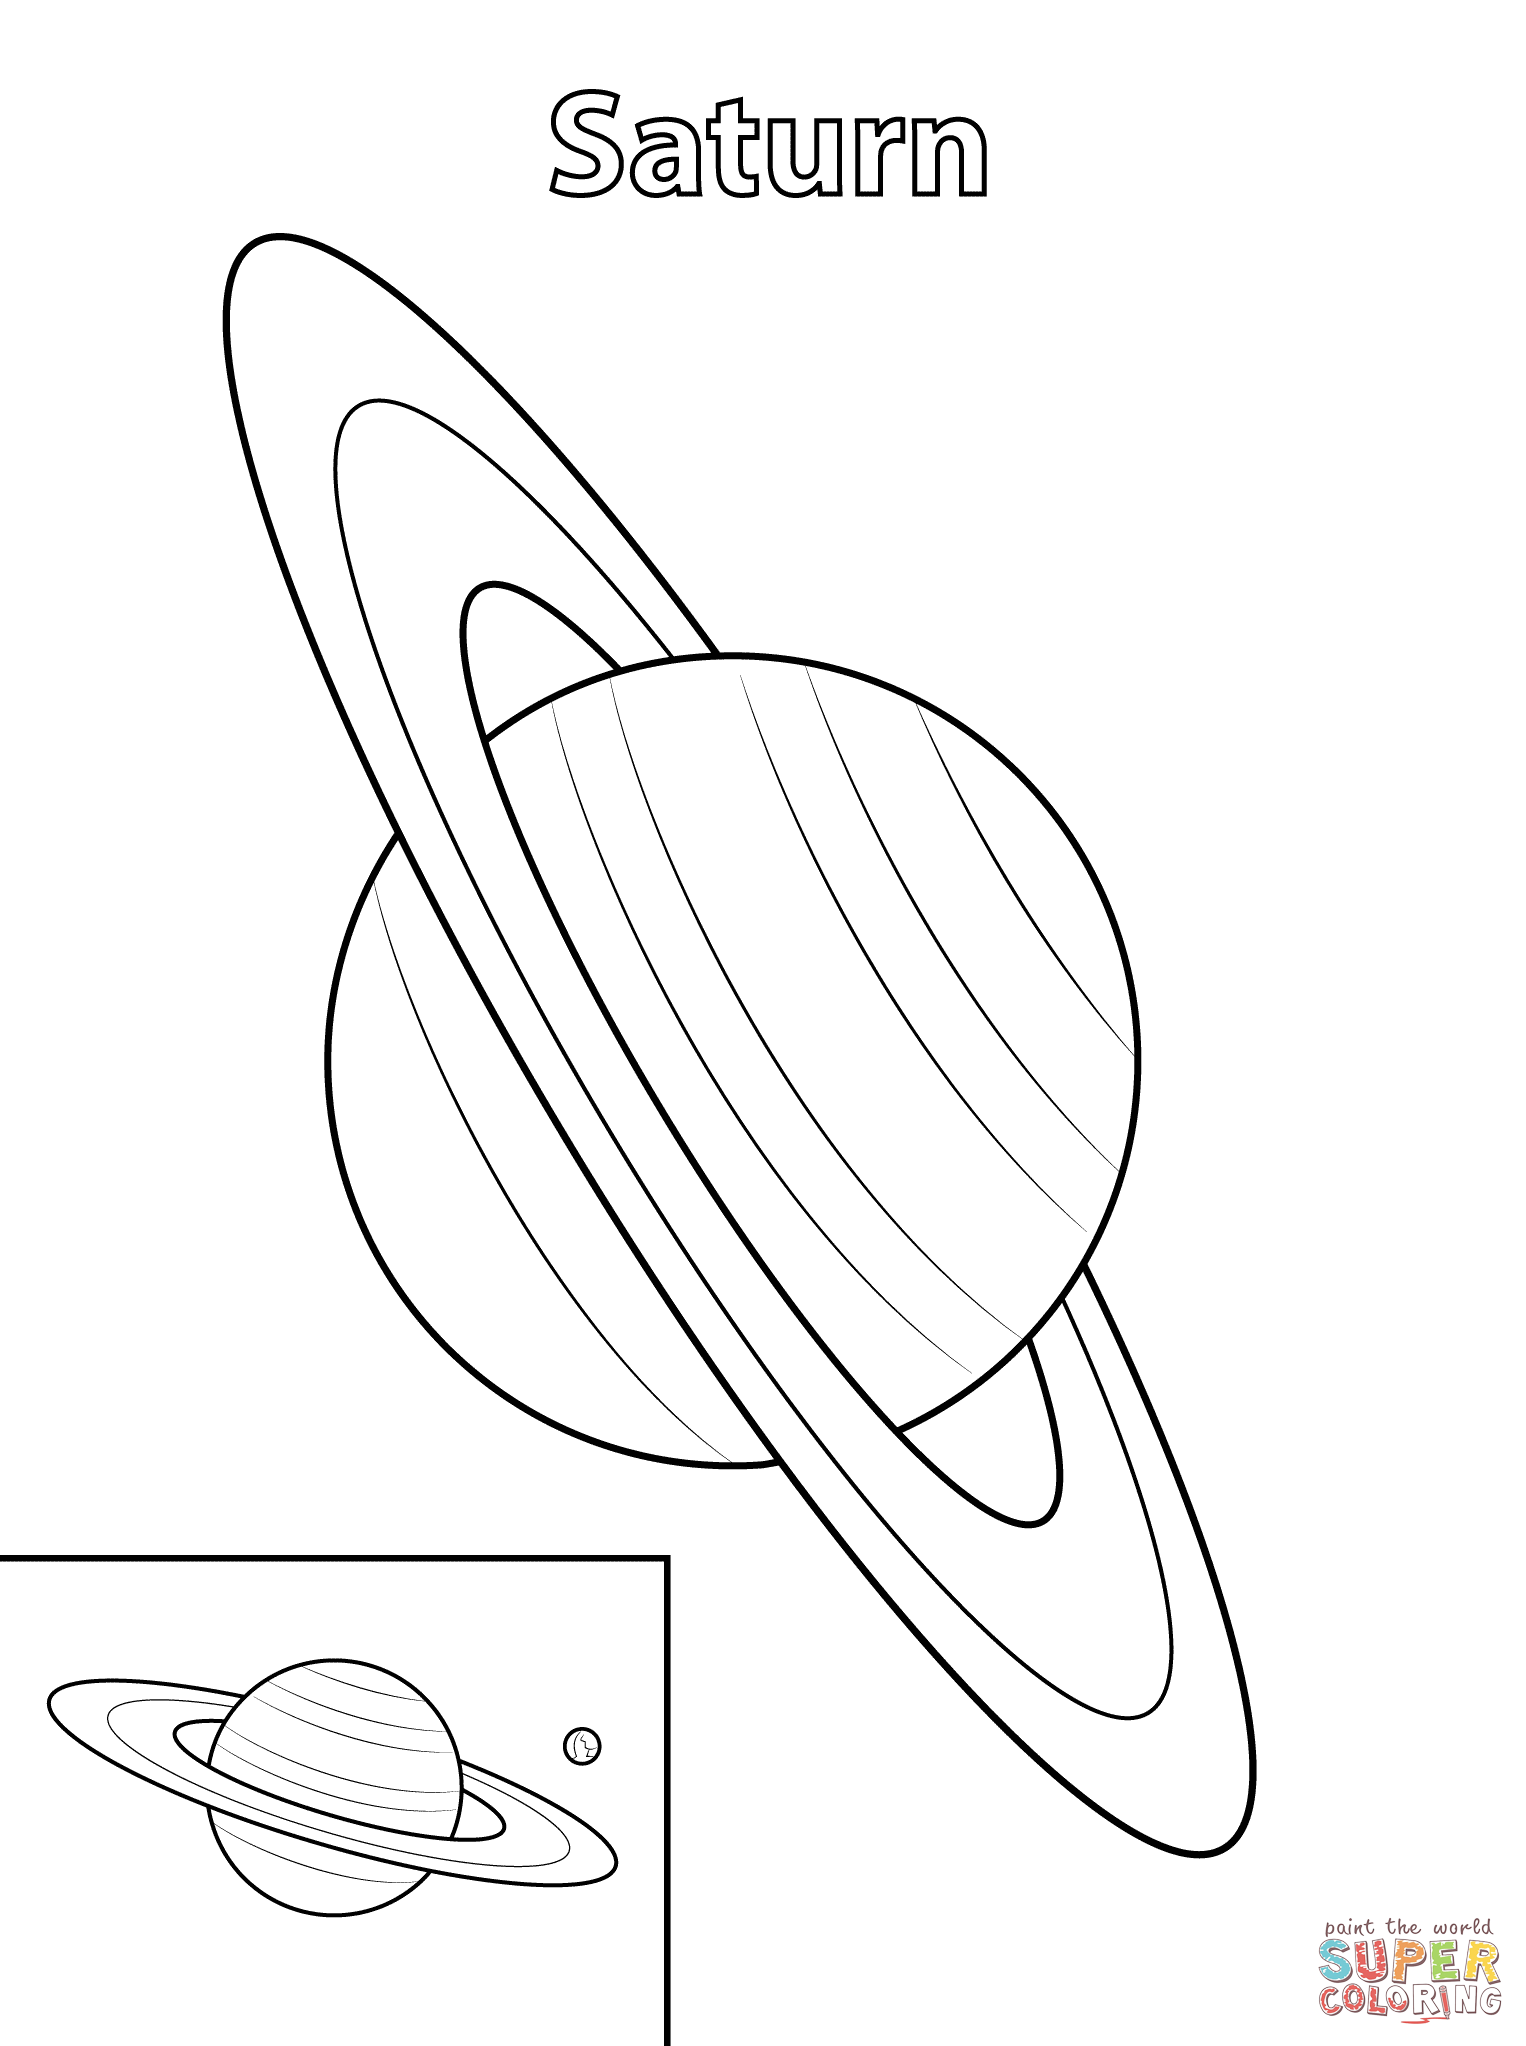 saturn colouring page coloring pages for kids planet saturn coloring pages page saturn colouring